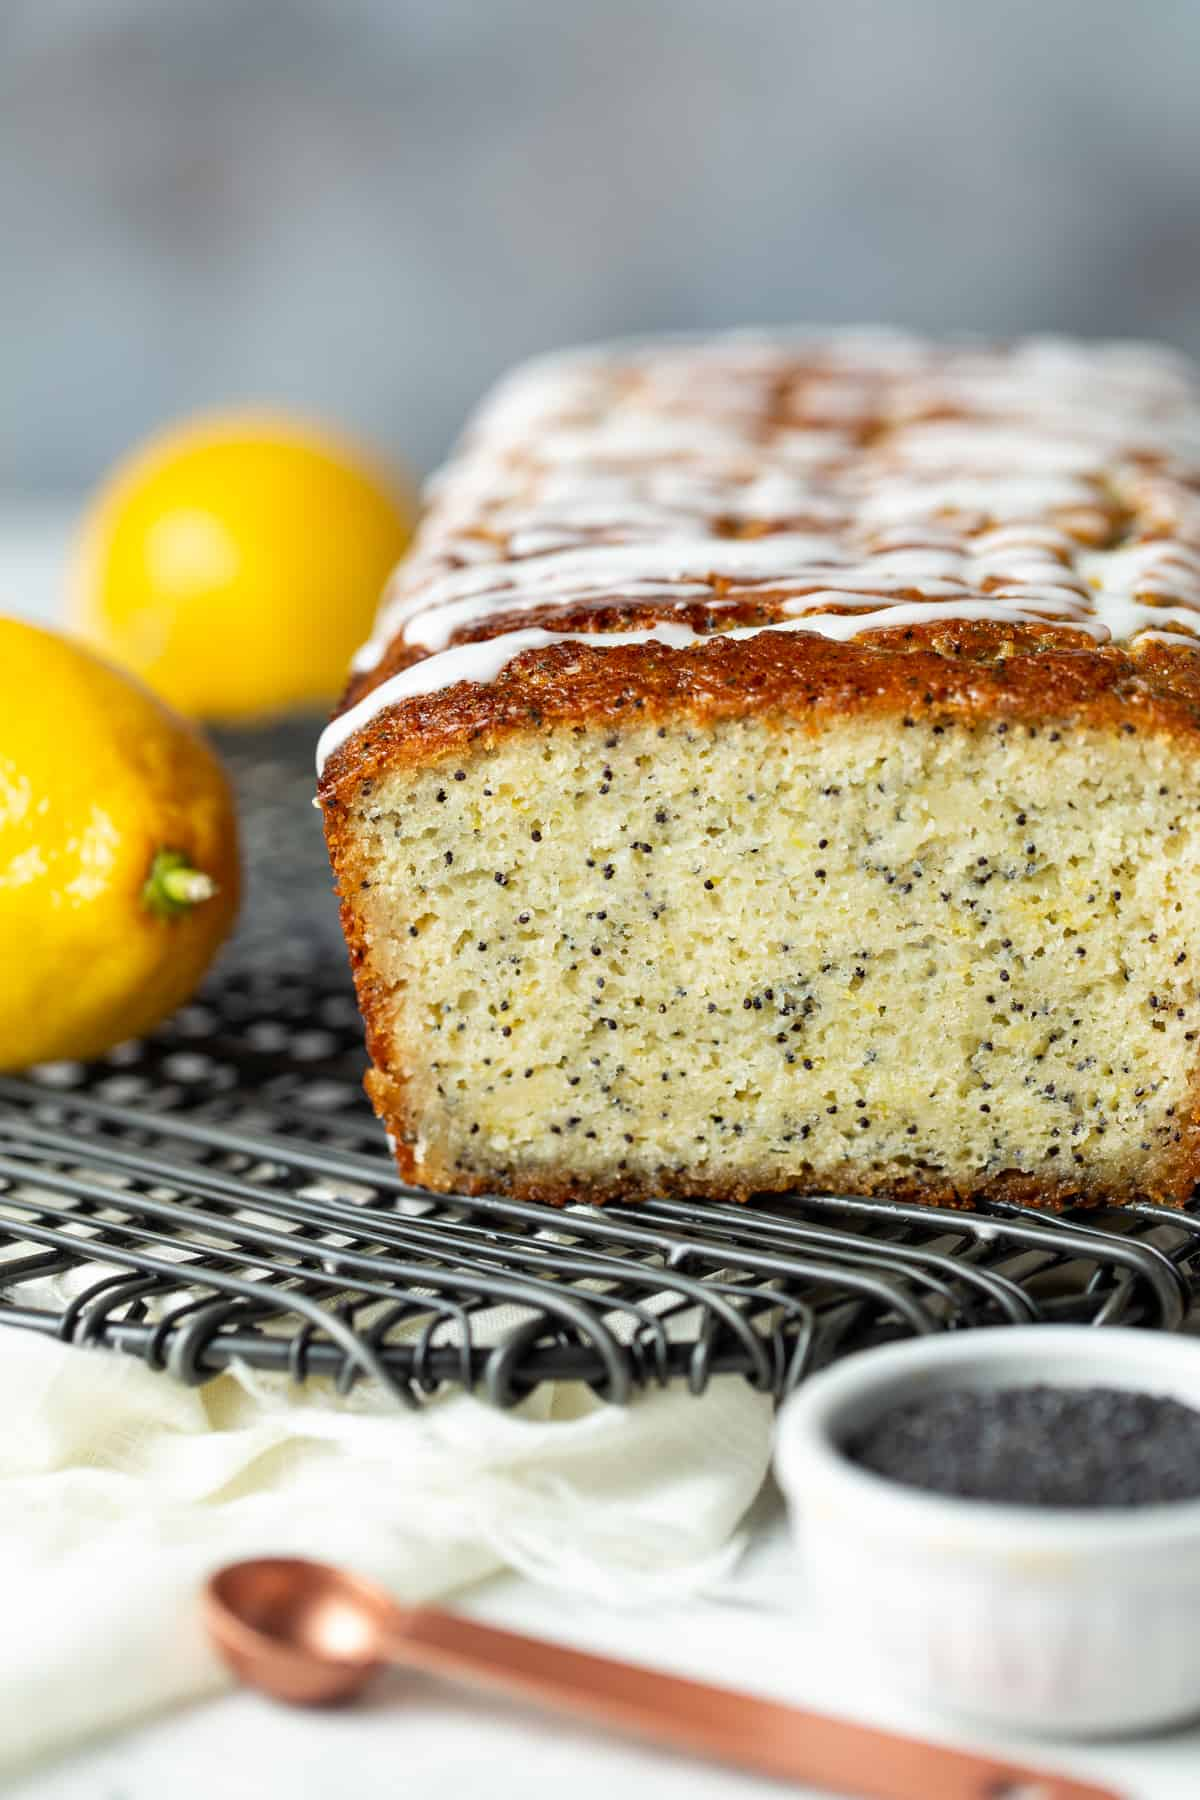 Loaf of lemon poppy seed bread drizzled with glaze on a cooling rack.